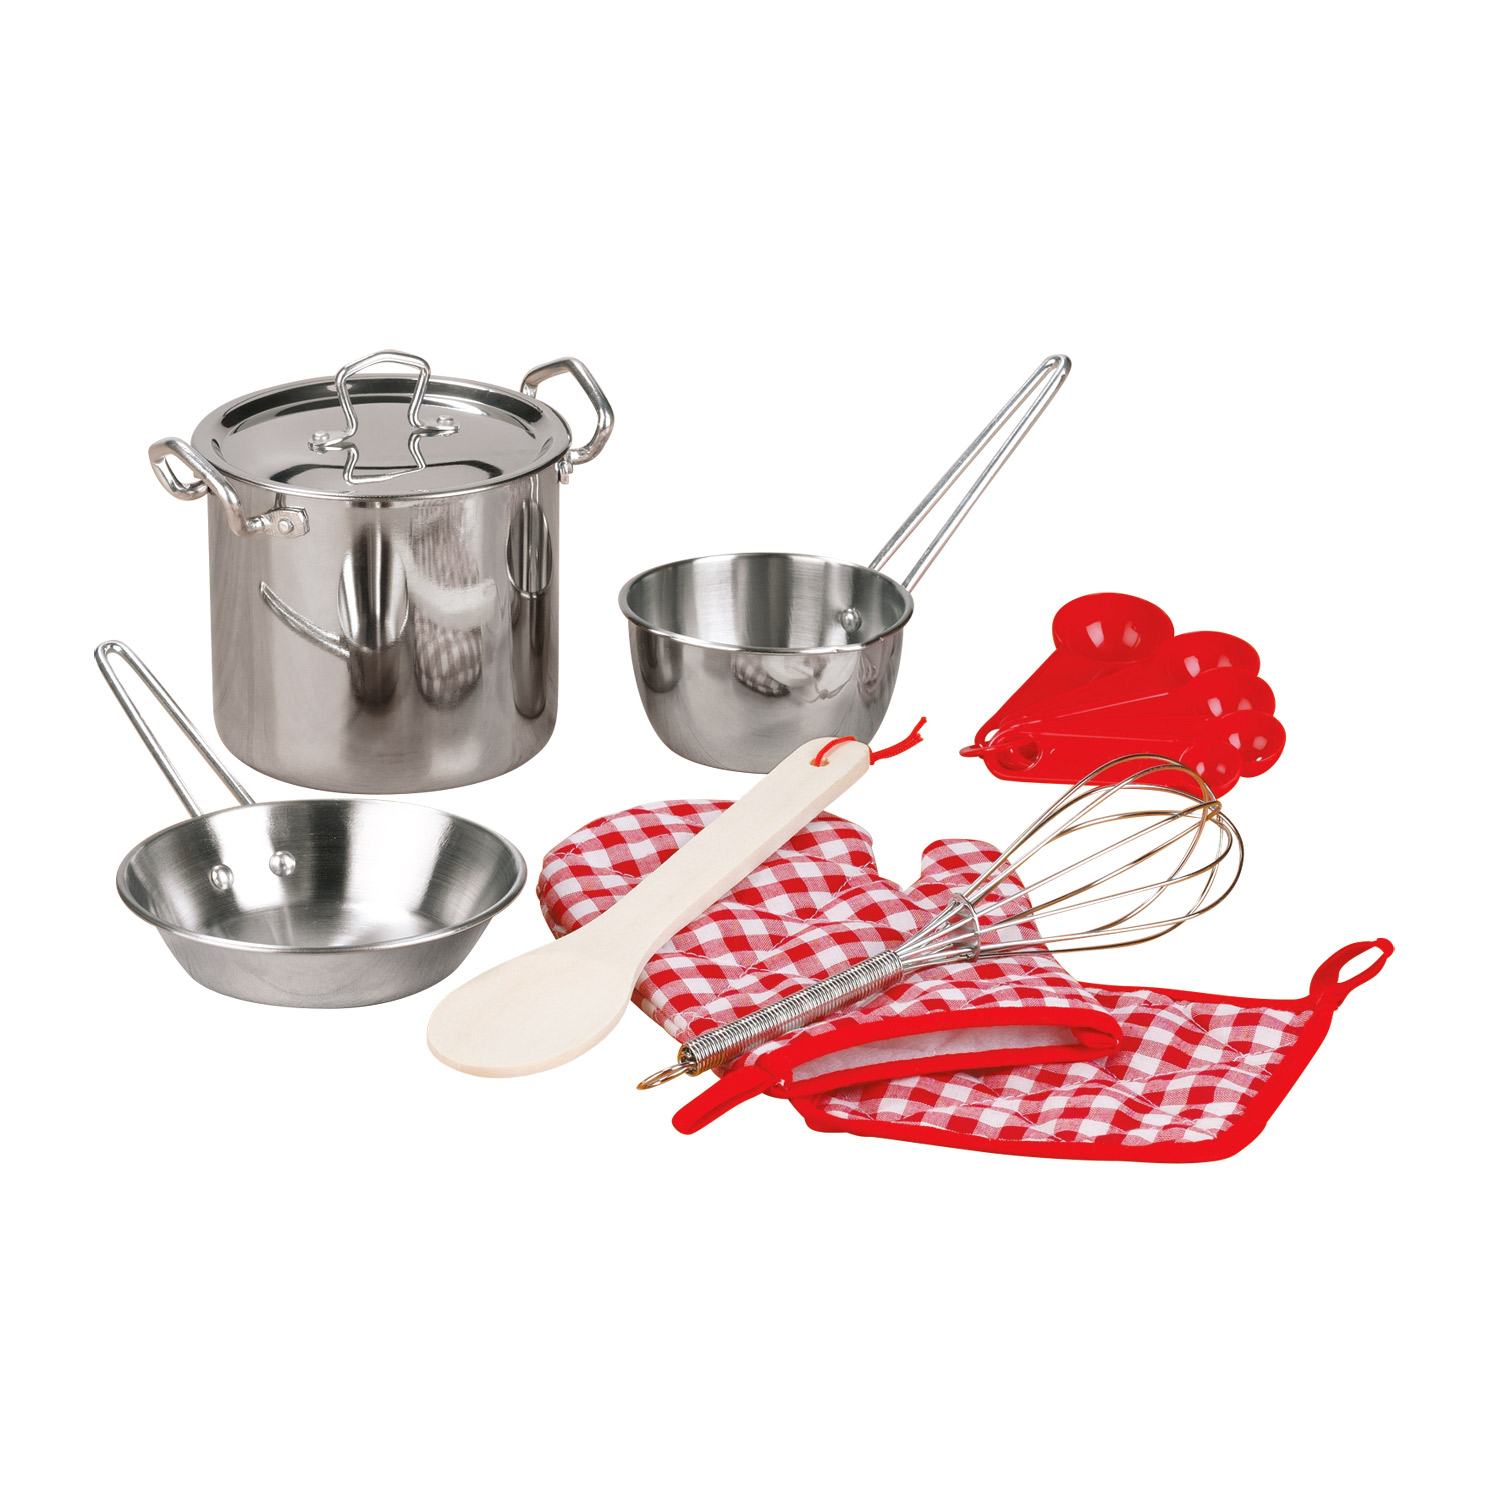 Cooking Set for Children